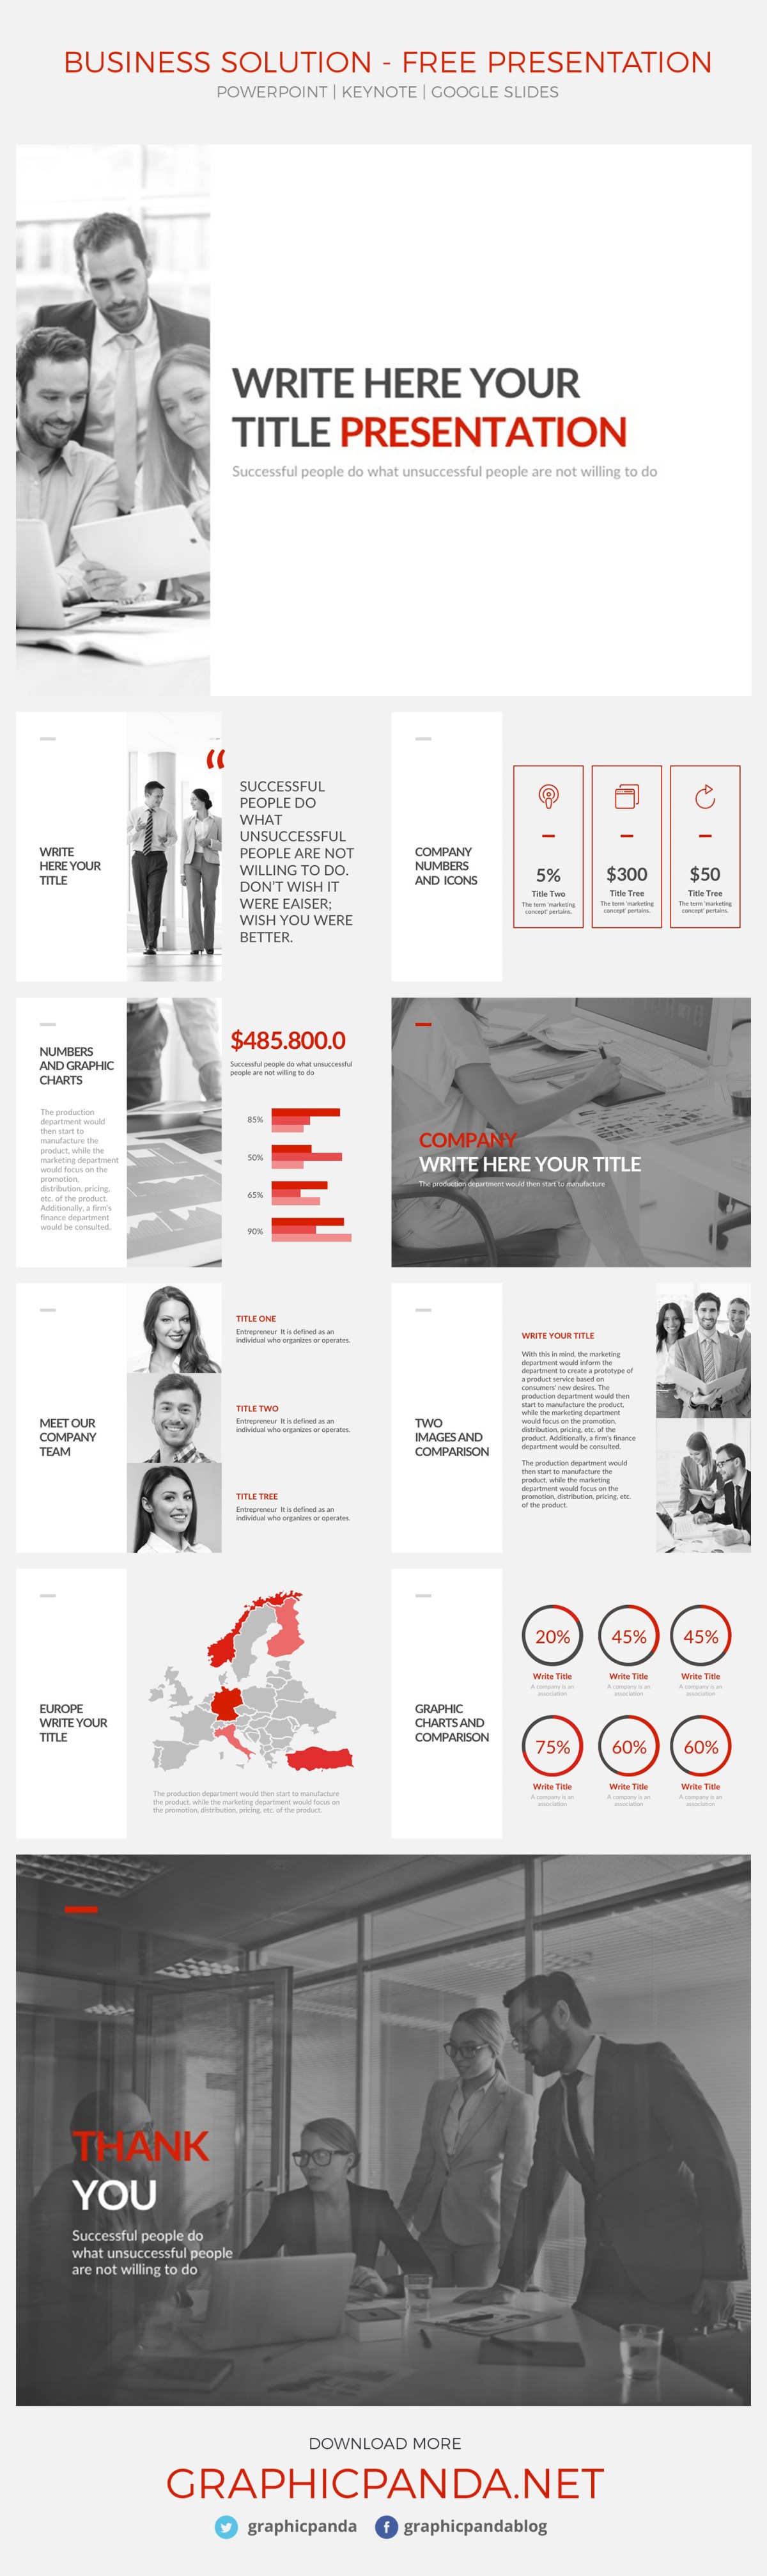 This Business Solutions free Powerpoint template, Keynote Template, and Google Slides themes give you a professional finish to your presentation while keeping it sleek and modern. A highly desirable piece of kit, this formal presentation template gives you flexibility over the text and information without detracting from the incredible overall design. Add your information, customize the slides, replace the pictures, use different icons, edit the charts and present your data or company profile like never before with this well-designed set of slides for powerpoint, Apple keynote and google slides.